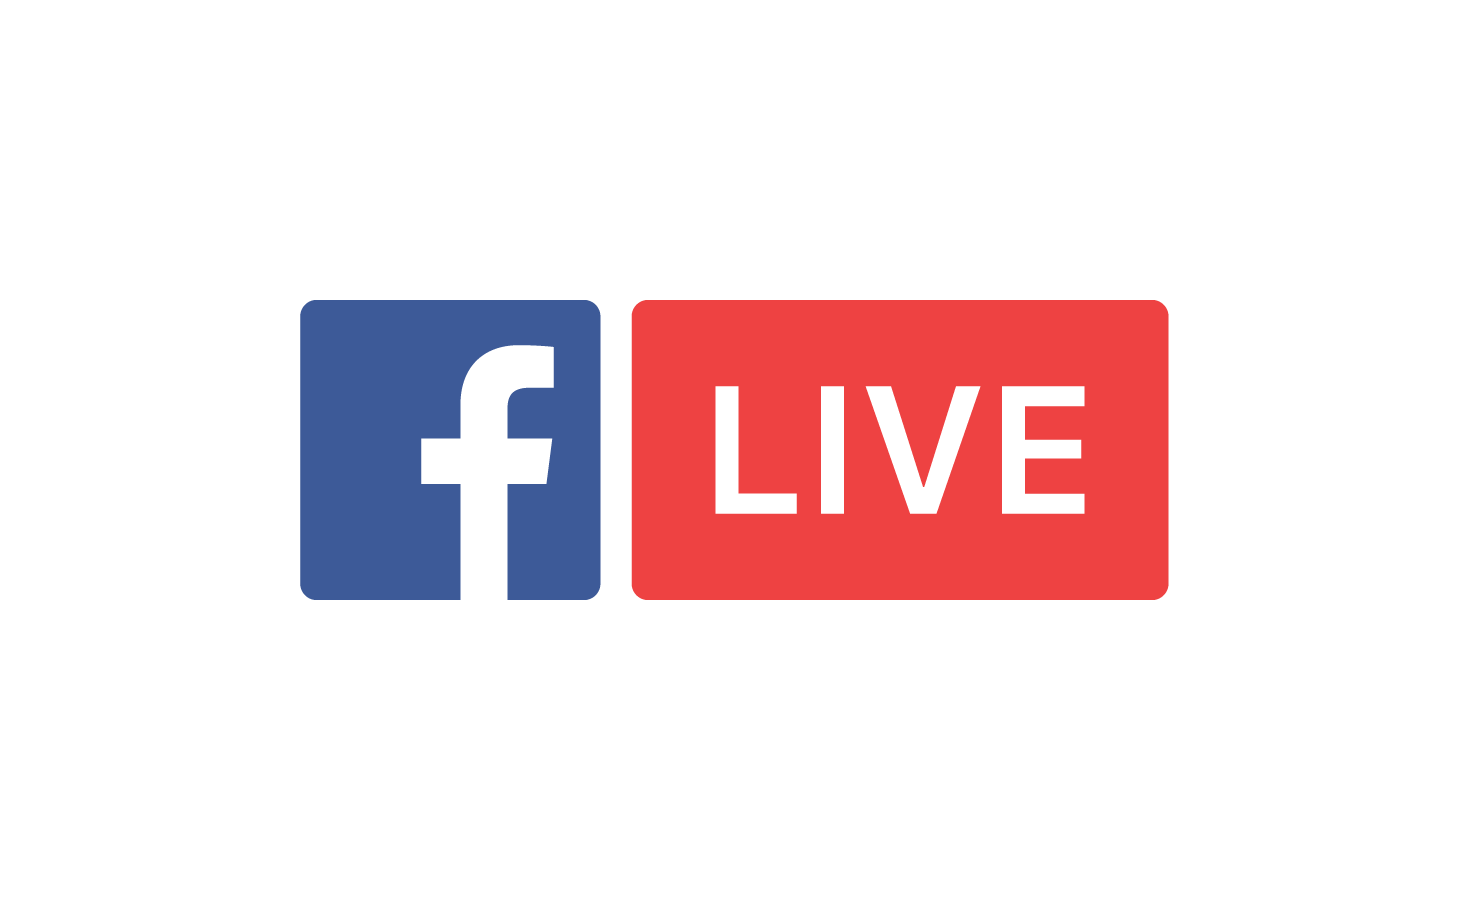 House Builder Software Why Businesses And Brands Need To Think Facebook Live For 2017